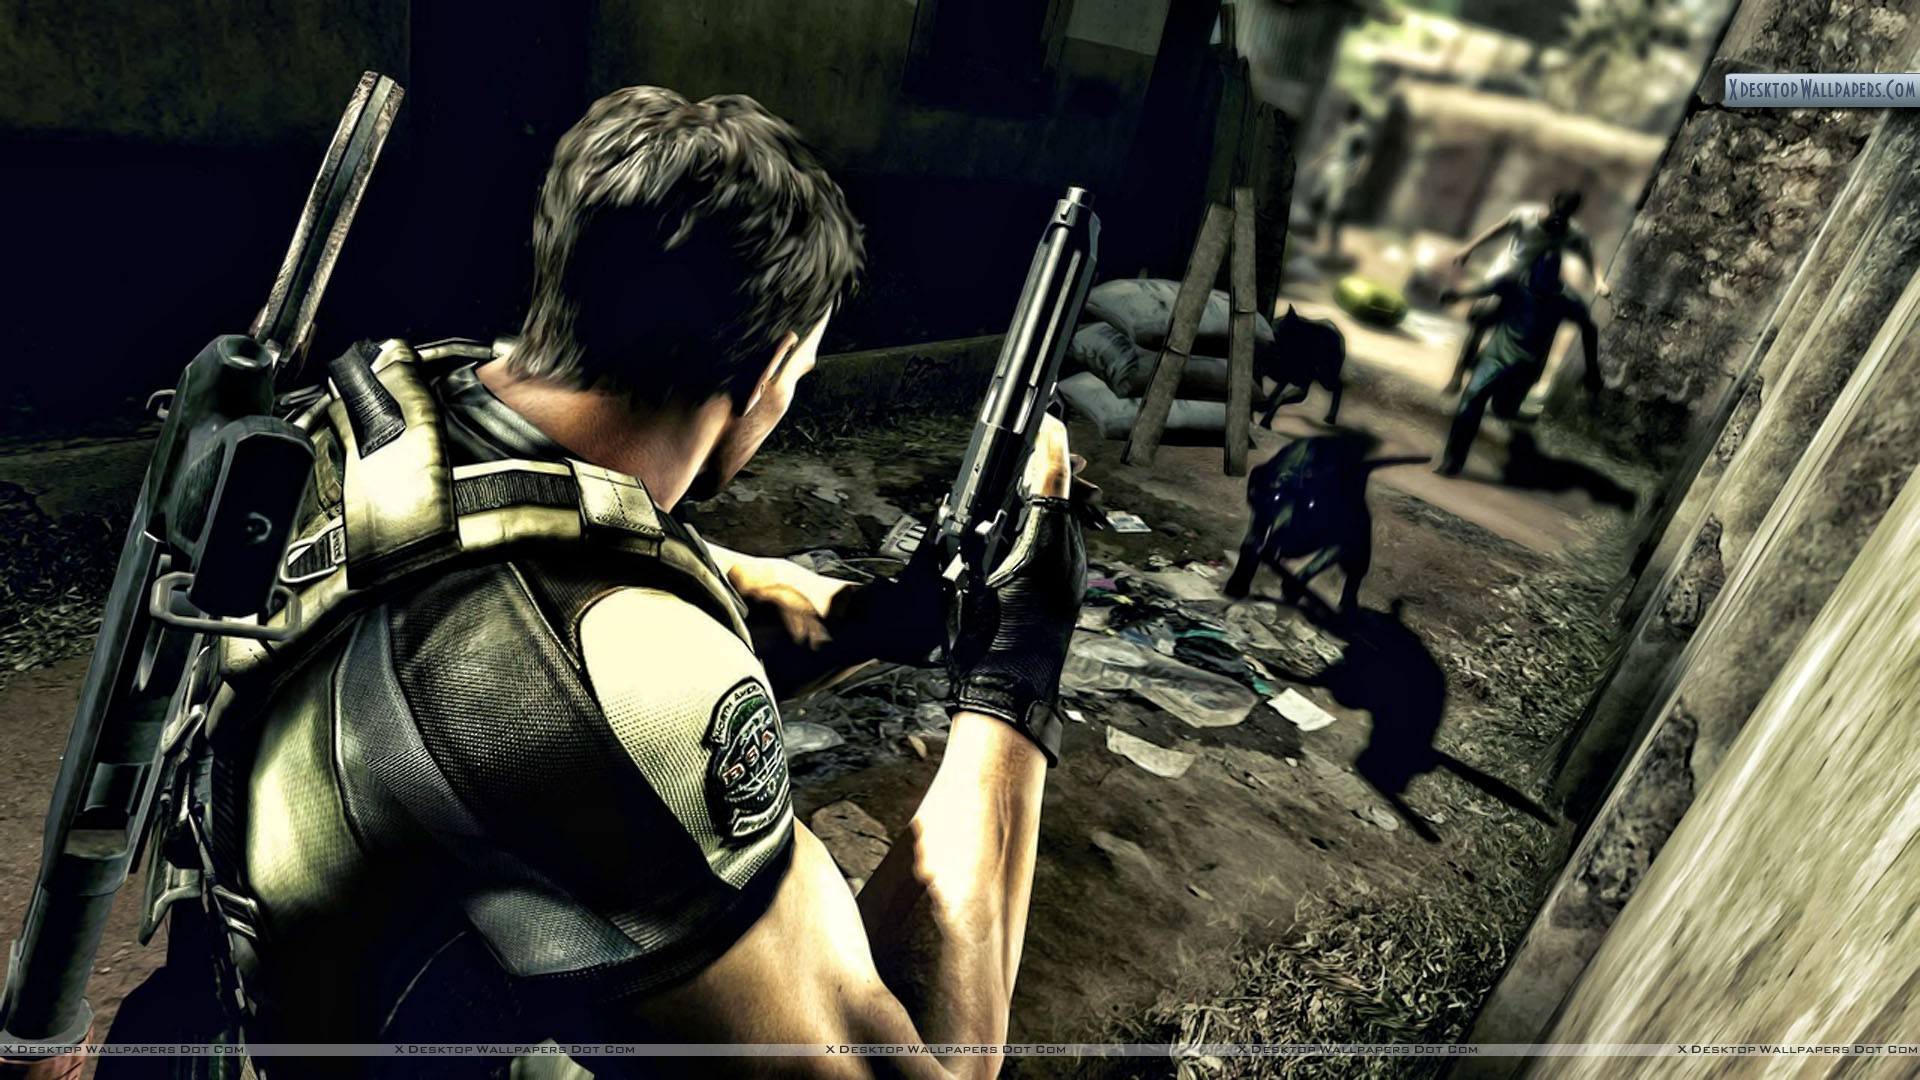 Resident Evil 5 Wallpapers Photos Images In Hd